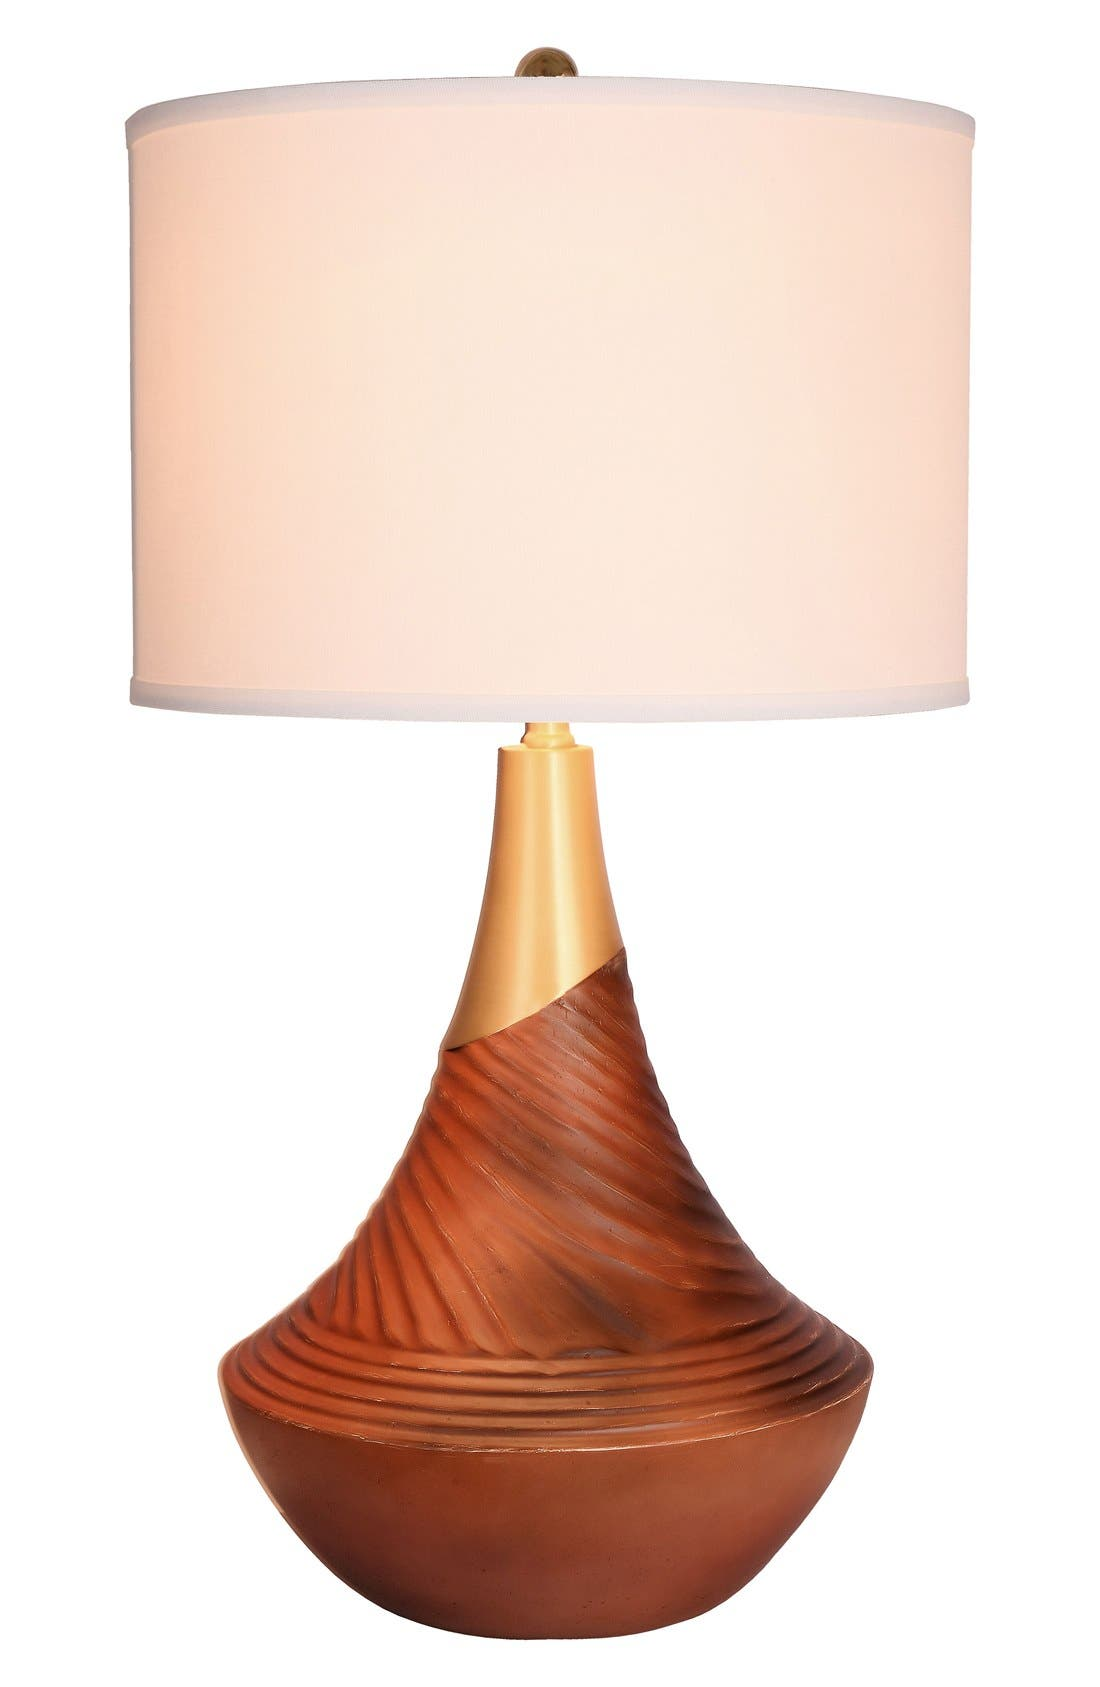 JALEXANDER LIGHTING JAlexander Cora Resin Table Lamp